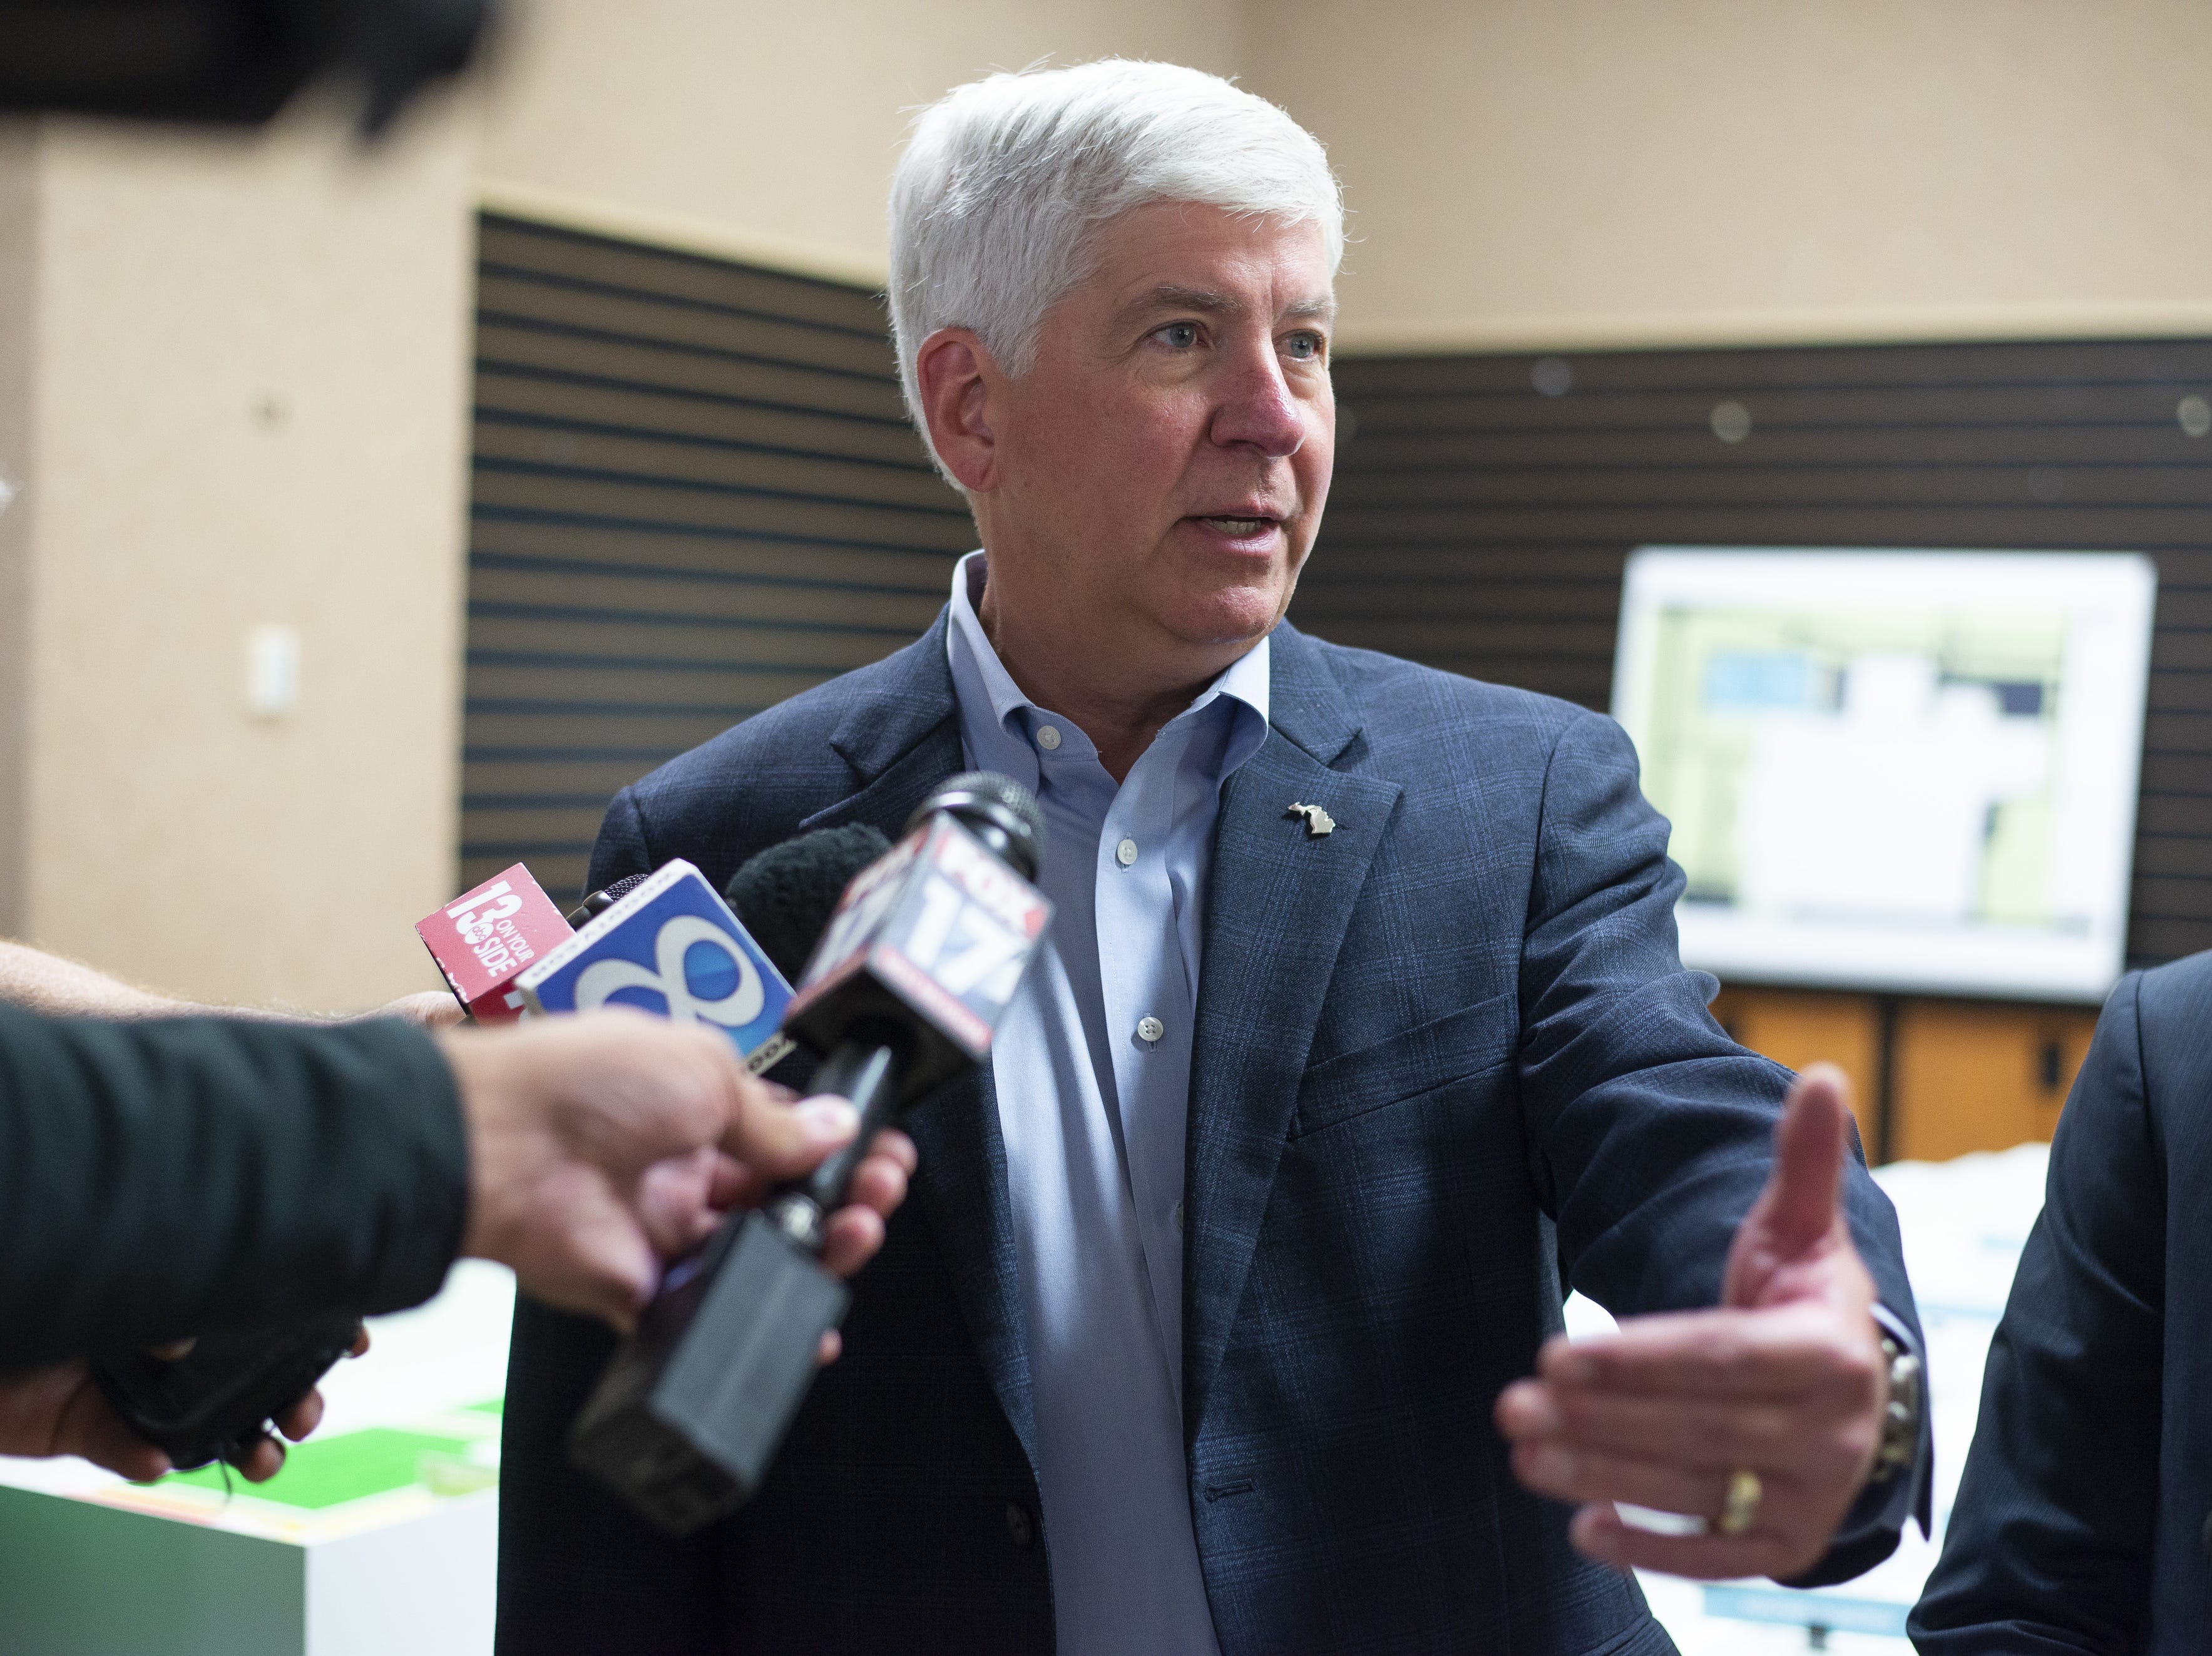 FILE - In this July 24, 2018 file photo, Gov. Rick Snyder answers questions after a press conference in Portage, Mich. Snyder has signed Republican-backed laws to significantly scale back citizen-initiated measures to raise the minimum wage and require paid sick leave for workers. The term-limited Republican governor's move Friday, Dec. 14, 2018, is sure to prompt a lawsuit over an unprecedented strategy adopted by lame-duck lawmakers. (Daniel Vasta/Kalamazoo Gazette via AP File)